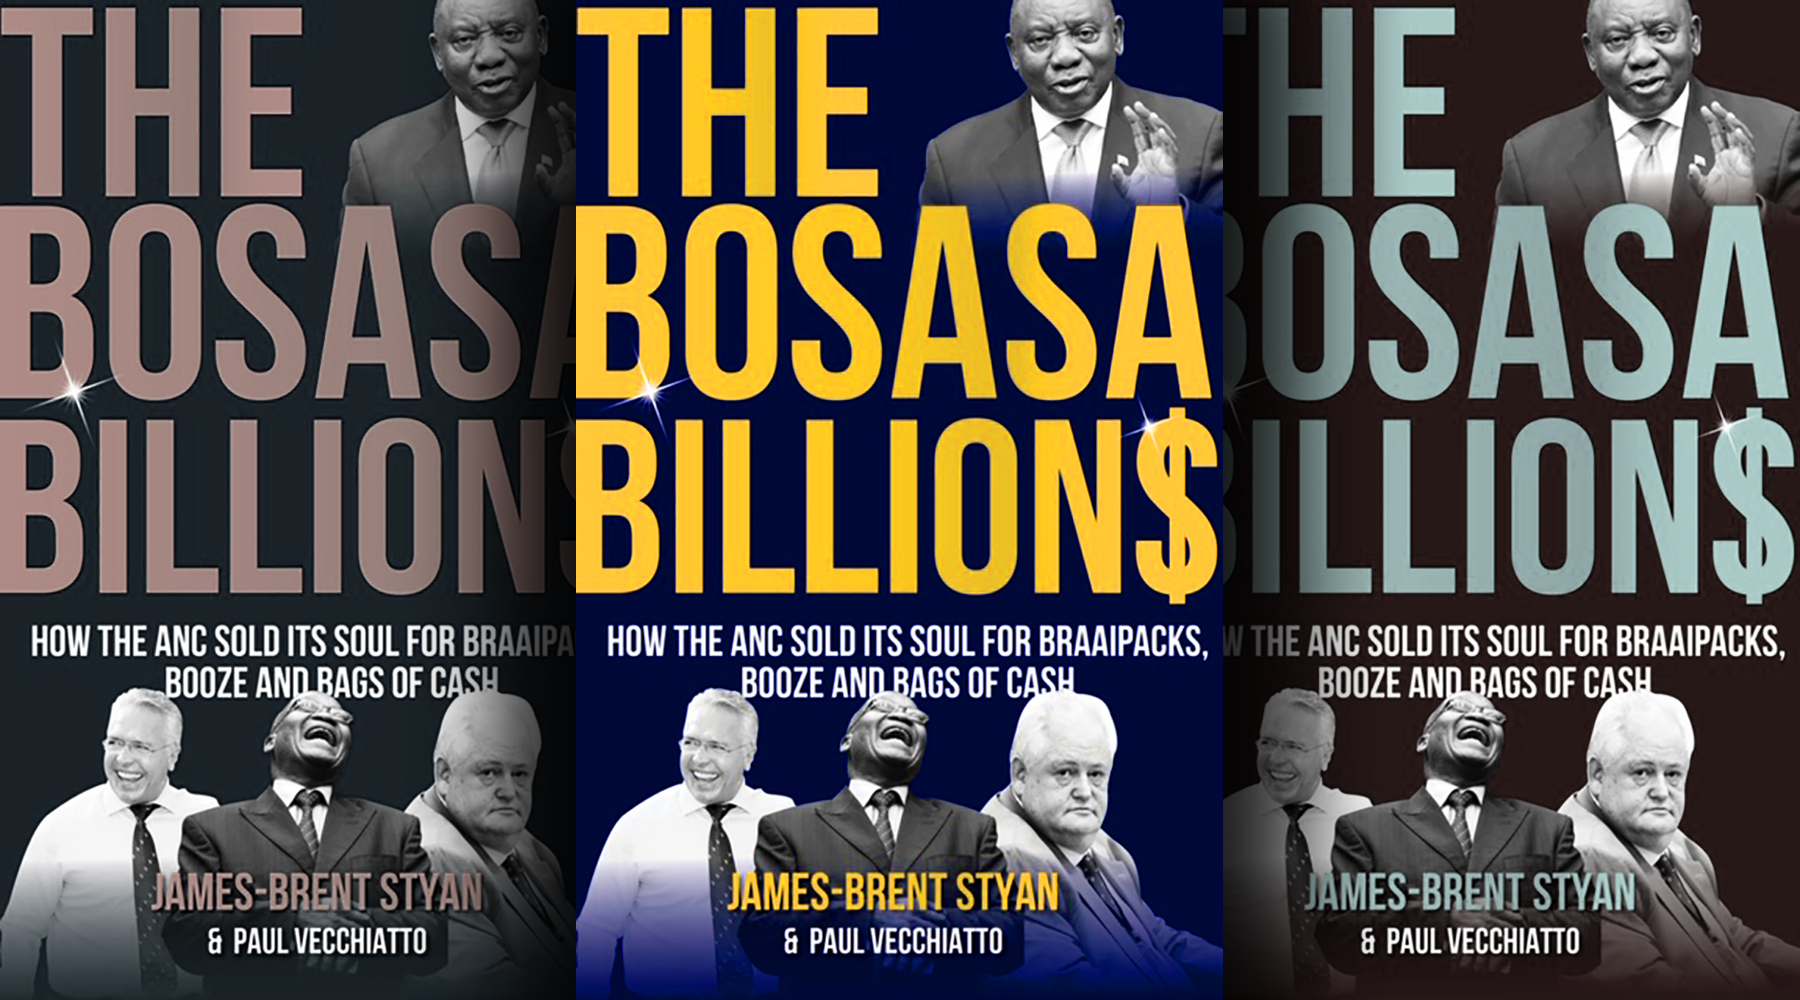 The Bosasa Billions: The Watsons and the arson charges